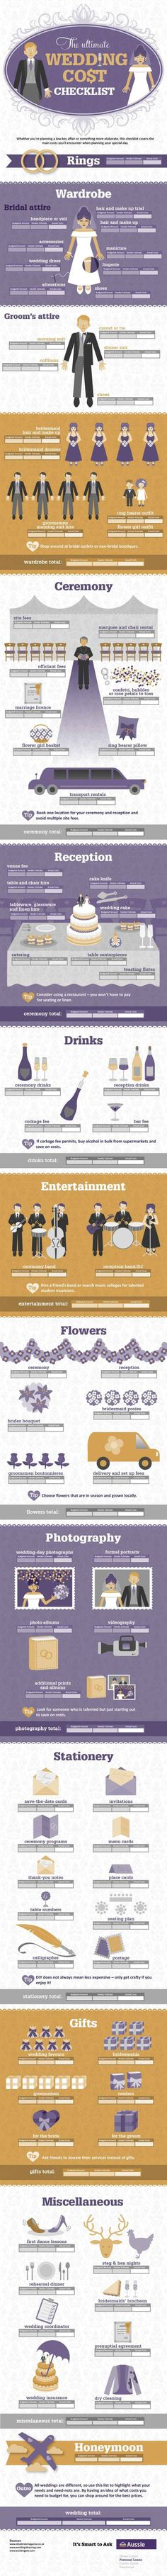 All the diagrams you need to plan your wedding!